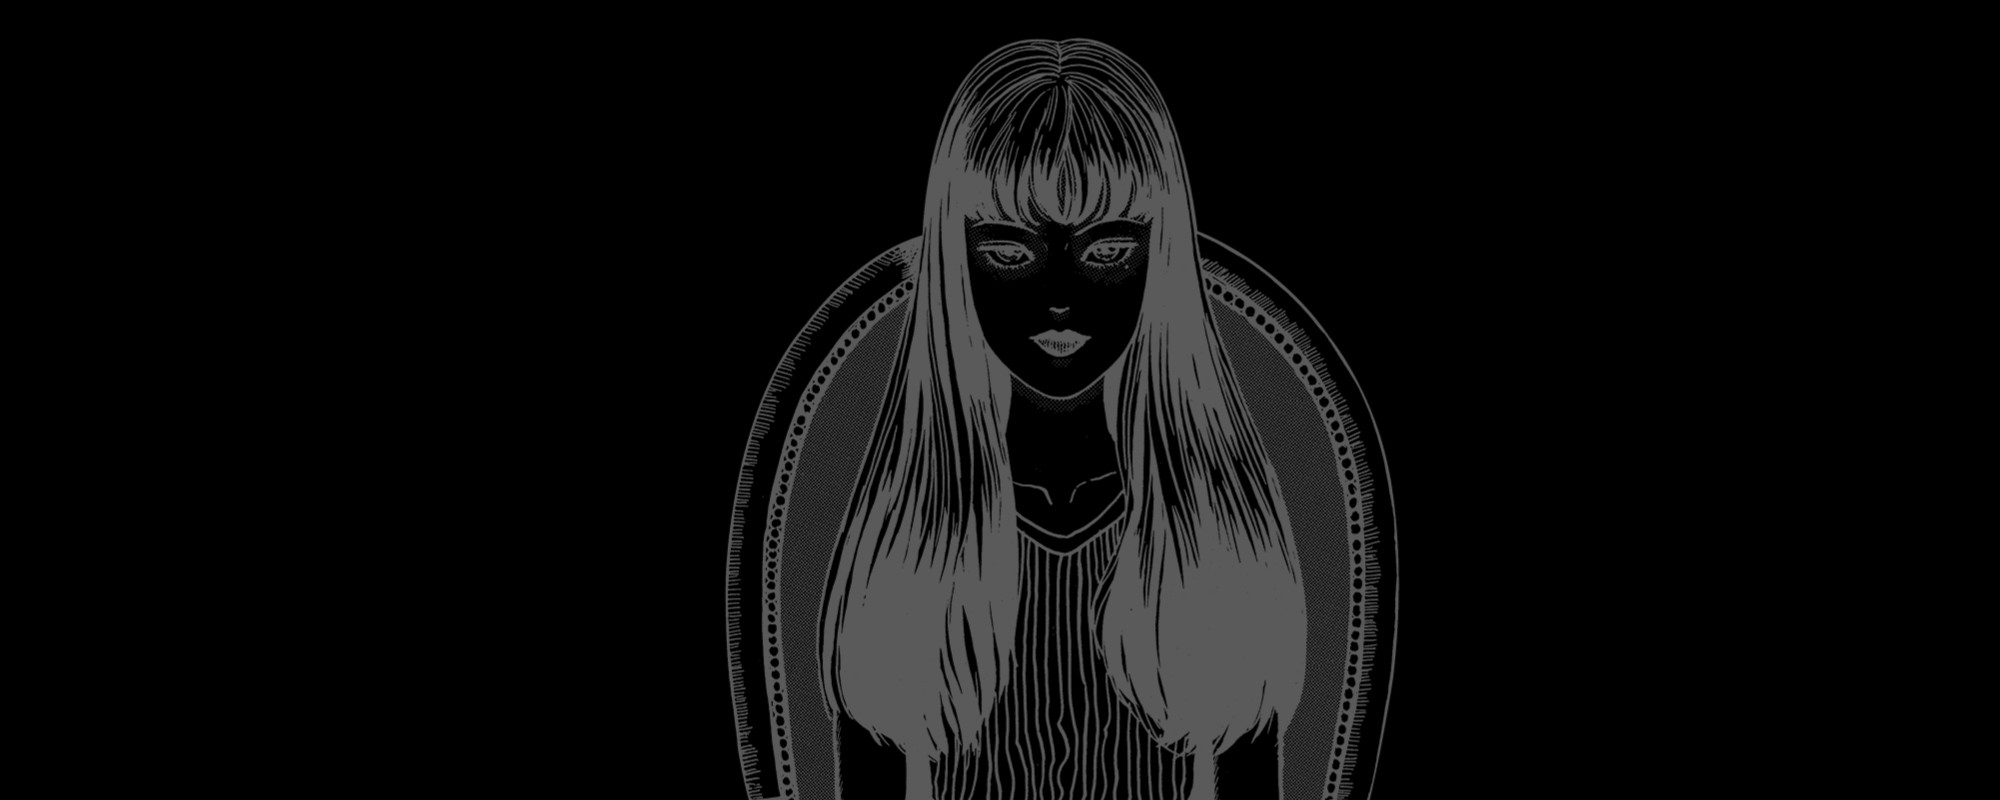 The Grotesque Tales of Junji Ito — Part 2: Tomie - Daniel ...